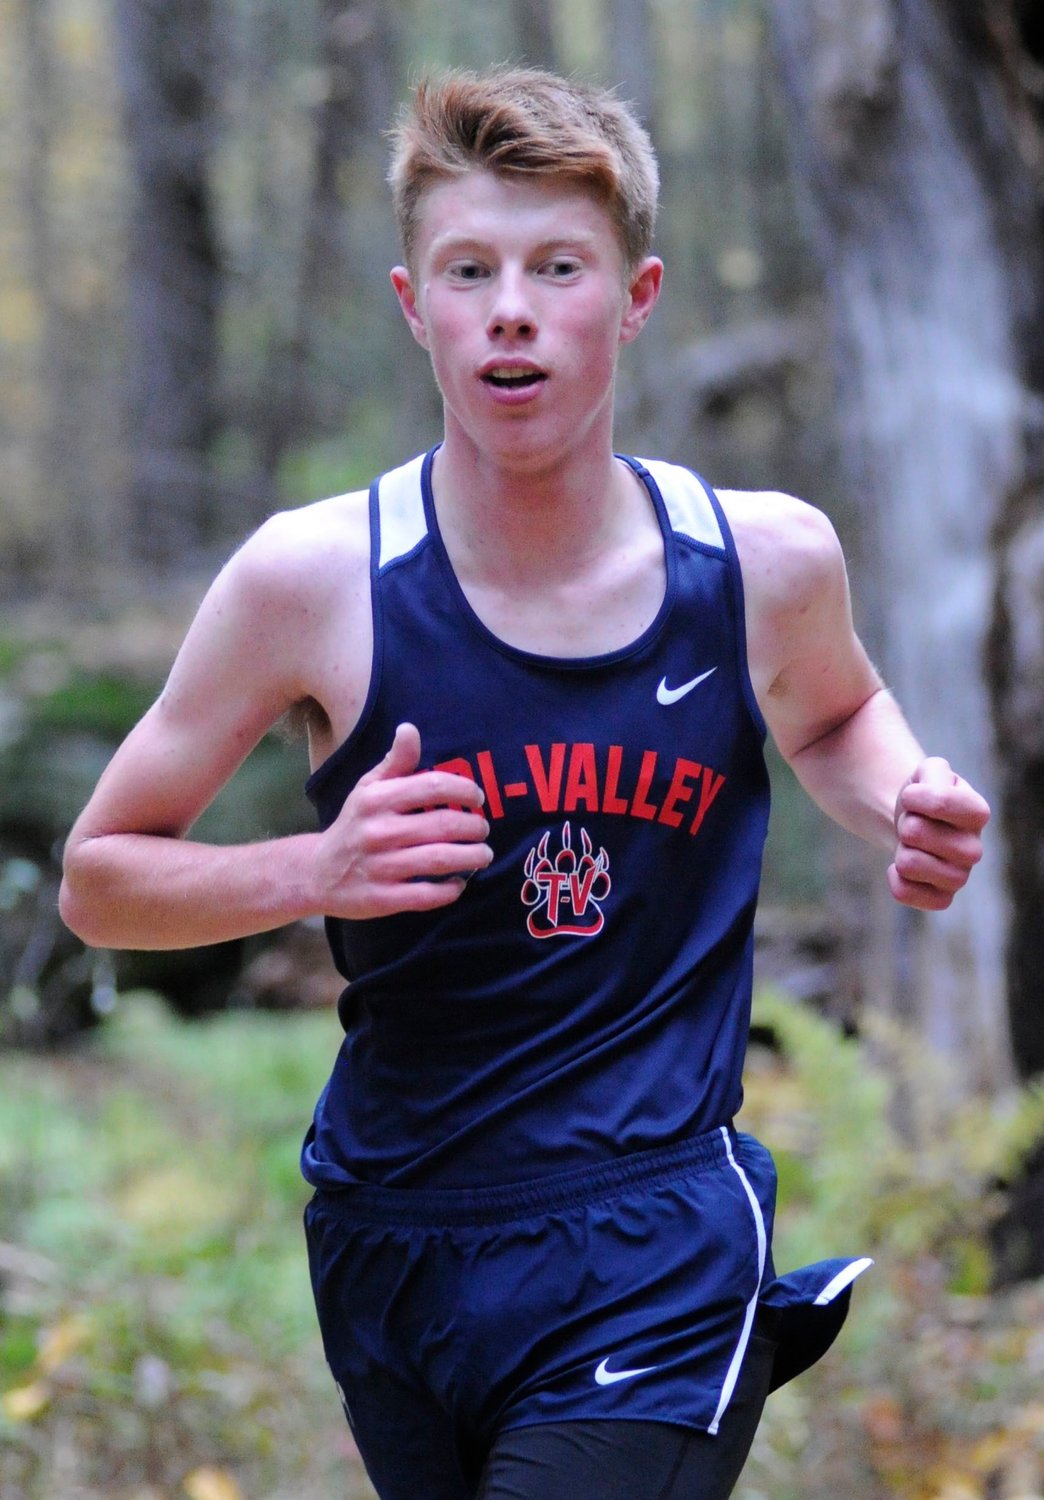 Daniel Rush of Tri-Valley posted the winning time of 18:05, 24 seconds ahead of Sullivan West's Bryce Maopolski's 18:29.